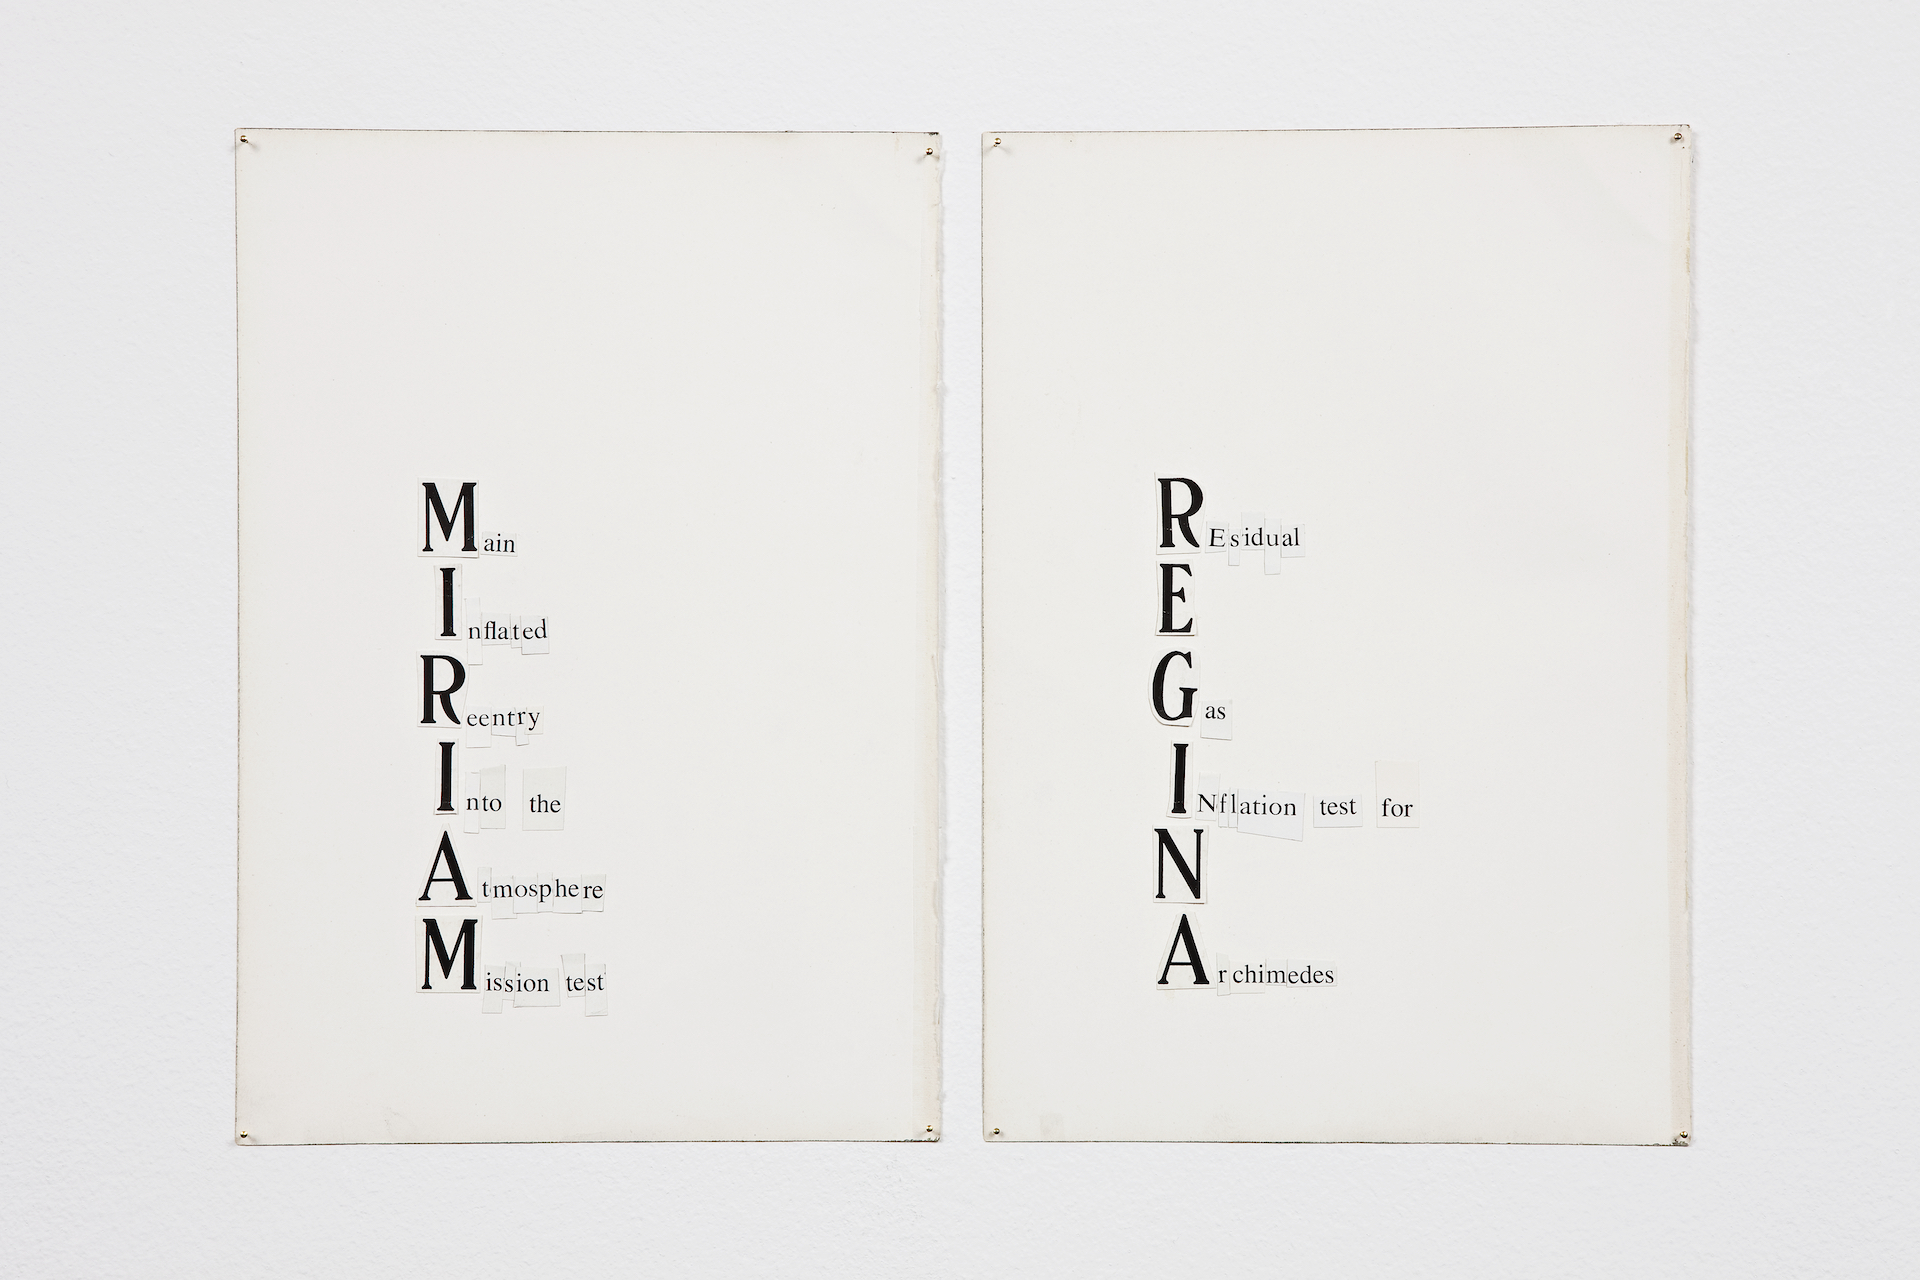 MIRIAM (Main Inflated Reentry Into the Atmosphere Mission Test), 2009, collage on paper, 16,5 x 24 cm   REGINA (REsidual Gas INflation test for Archimedes), 2009,collage on paper,16,5 x 24 cm